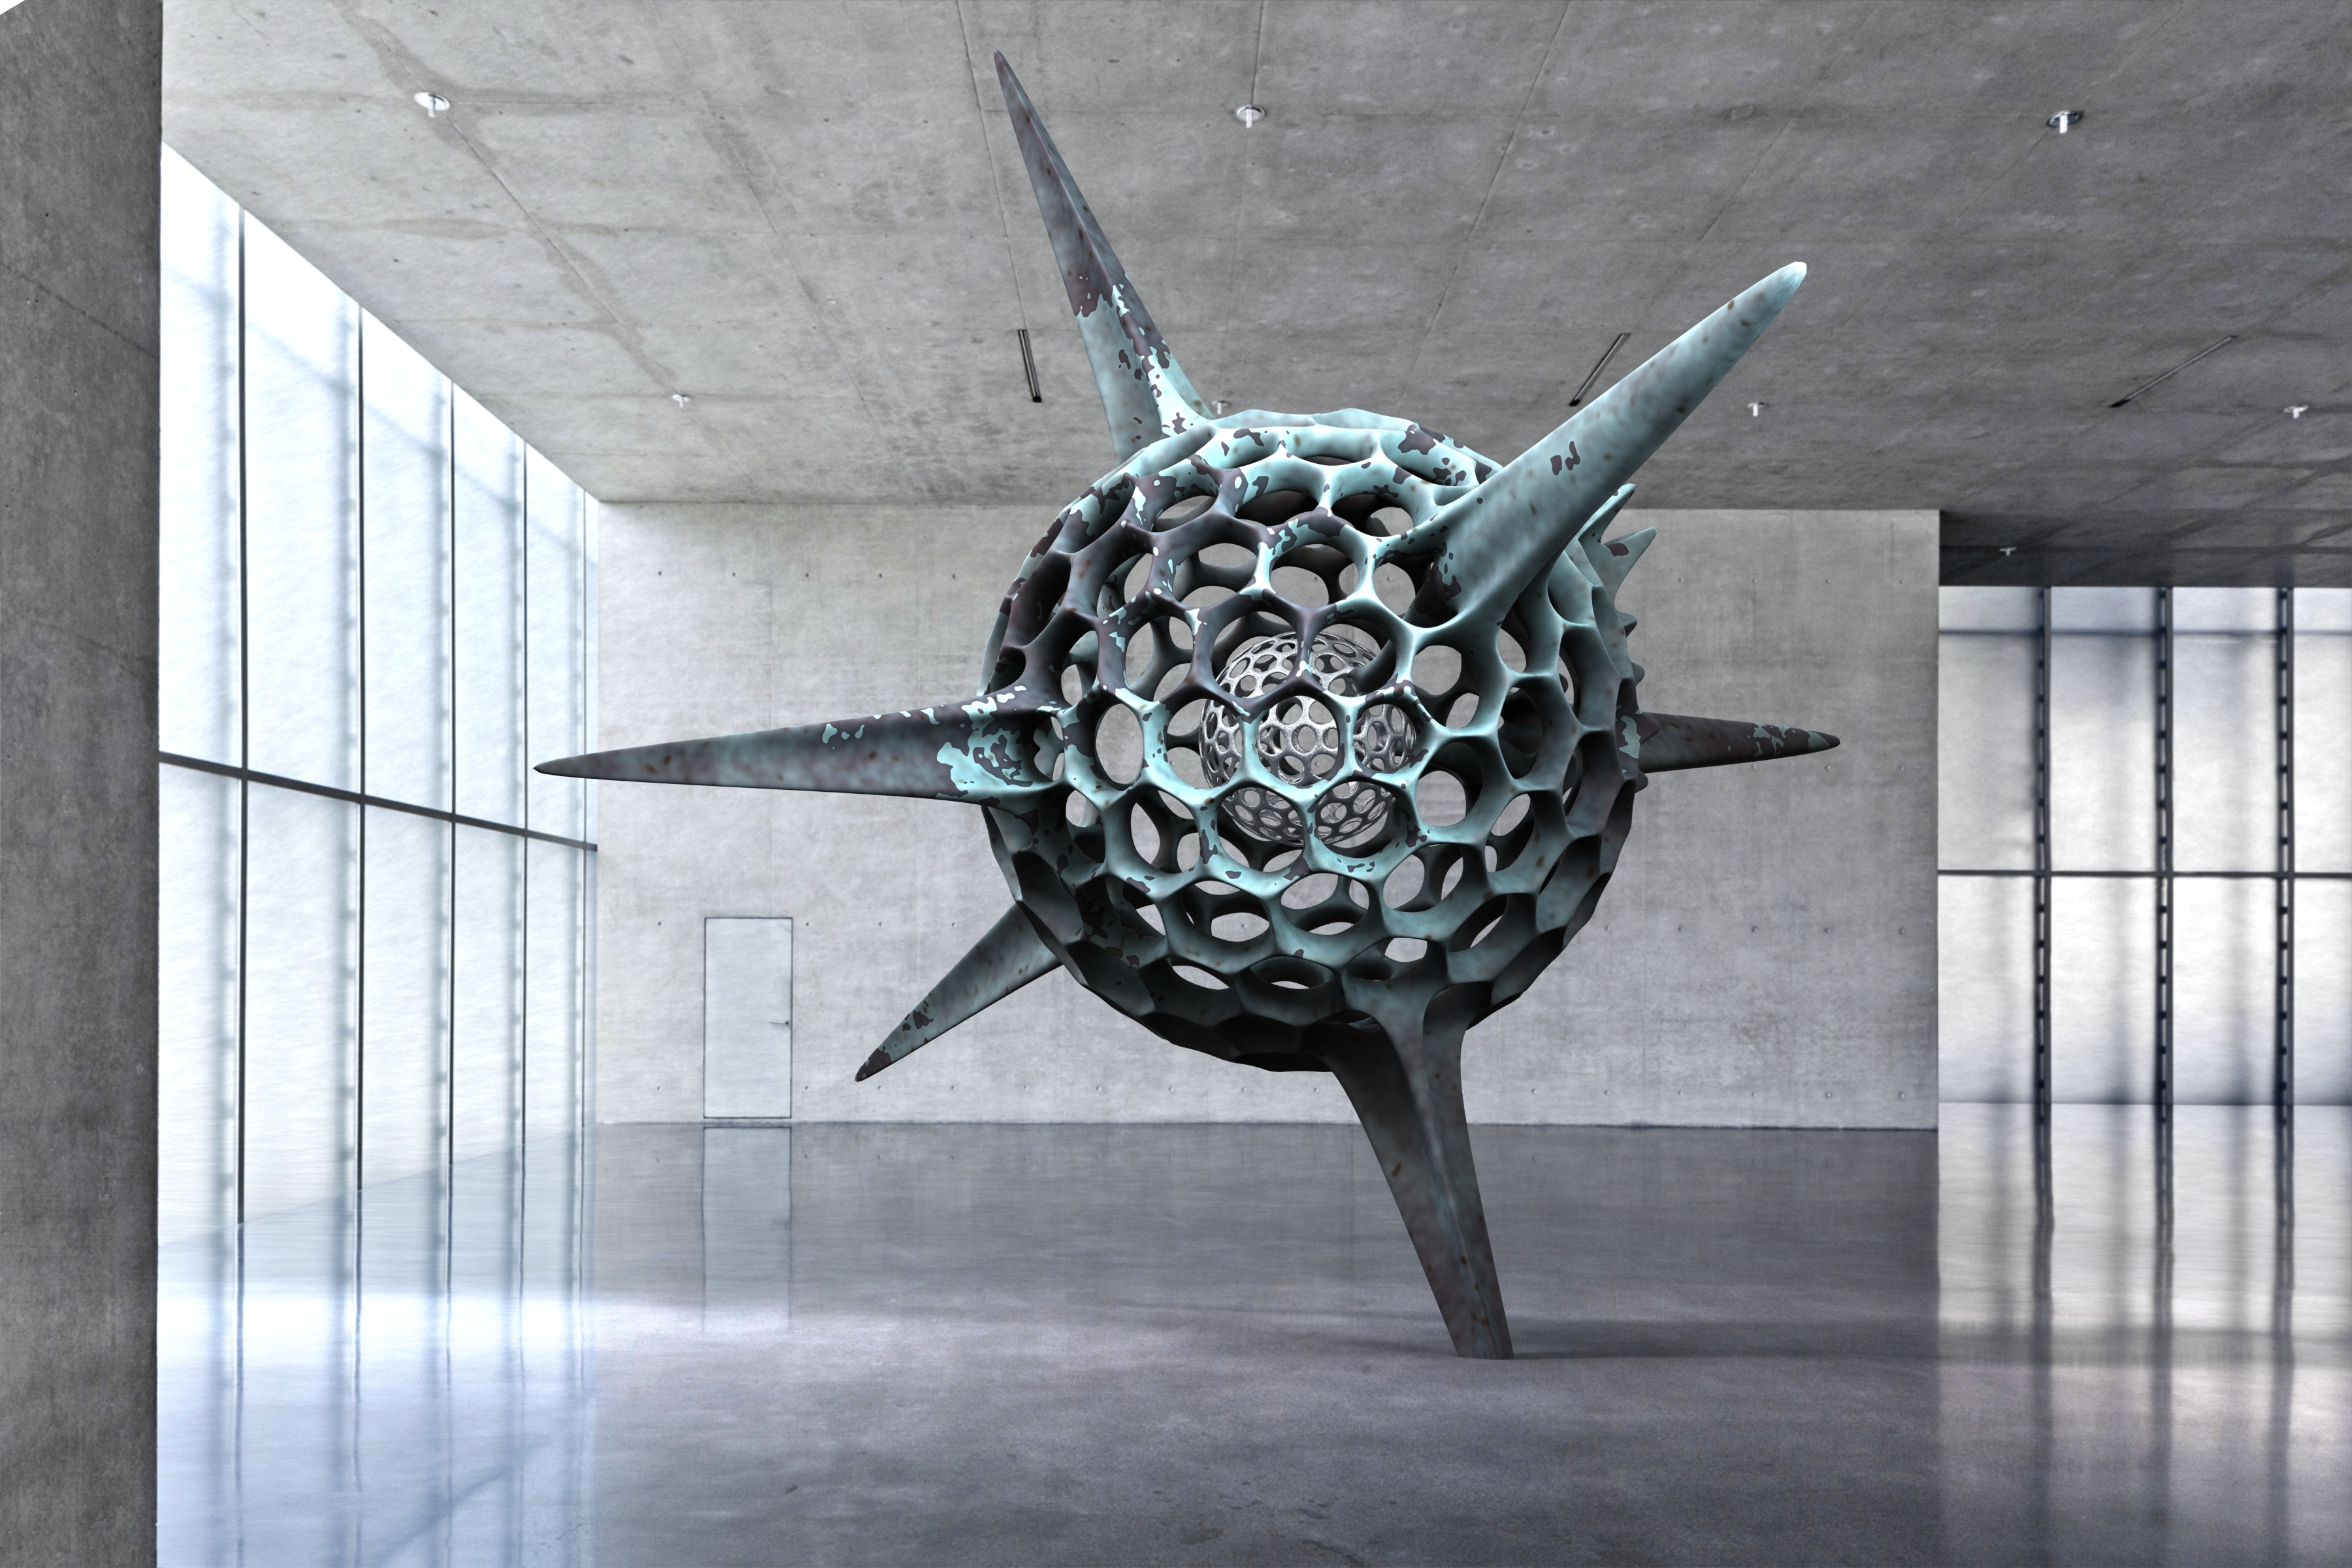 Kunsthaus Bregenz Contemporary Sculpture face off KUB Architecture Radiolarian Science Sea Creature 1